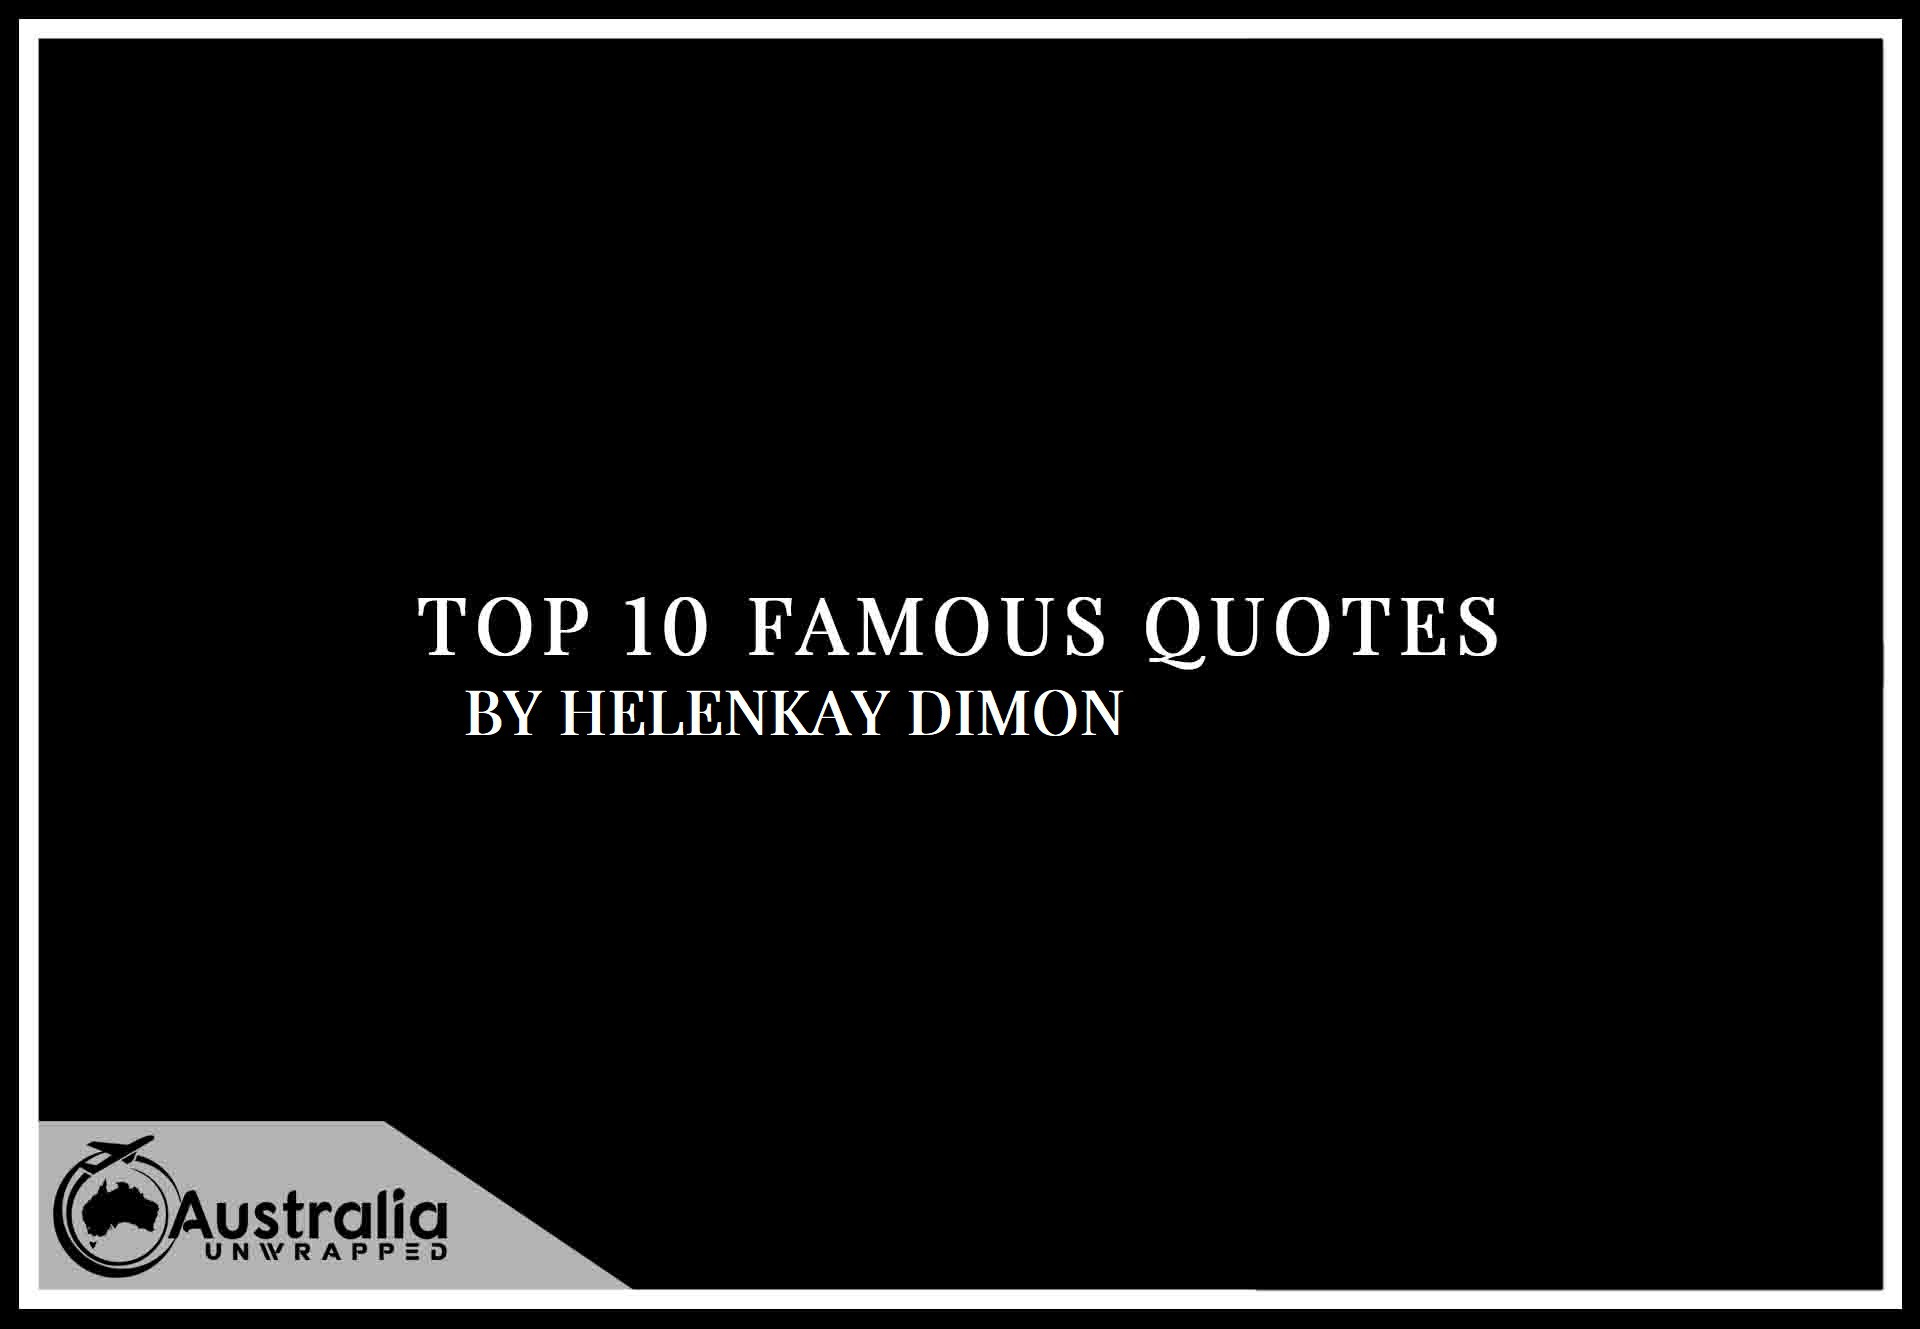 Top 10 Famous Quotes by Author HelenKay Dimon